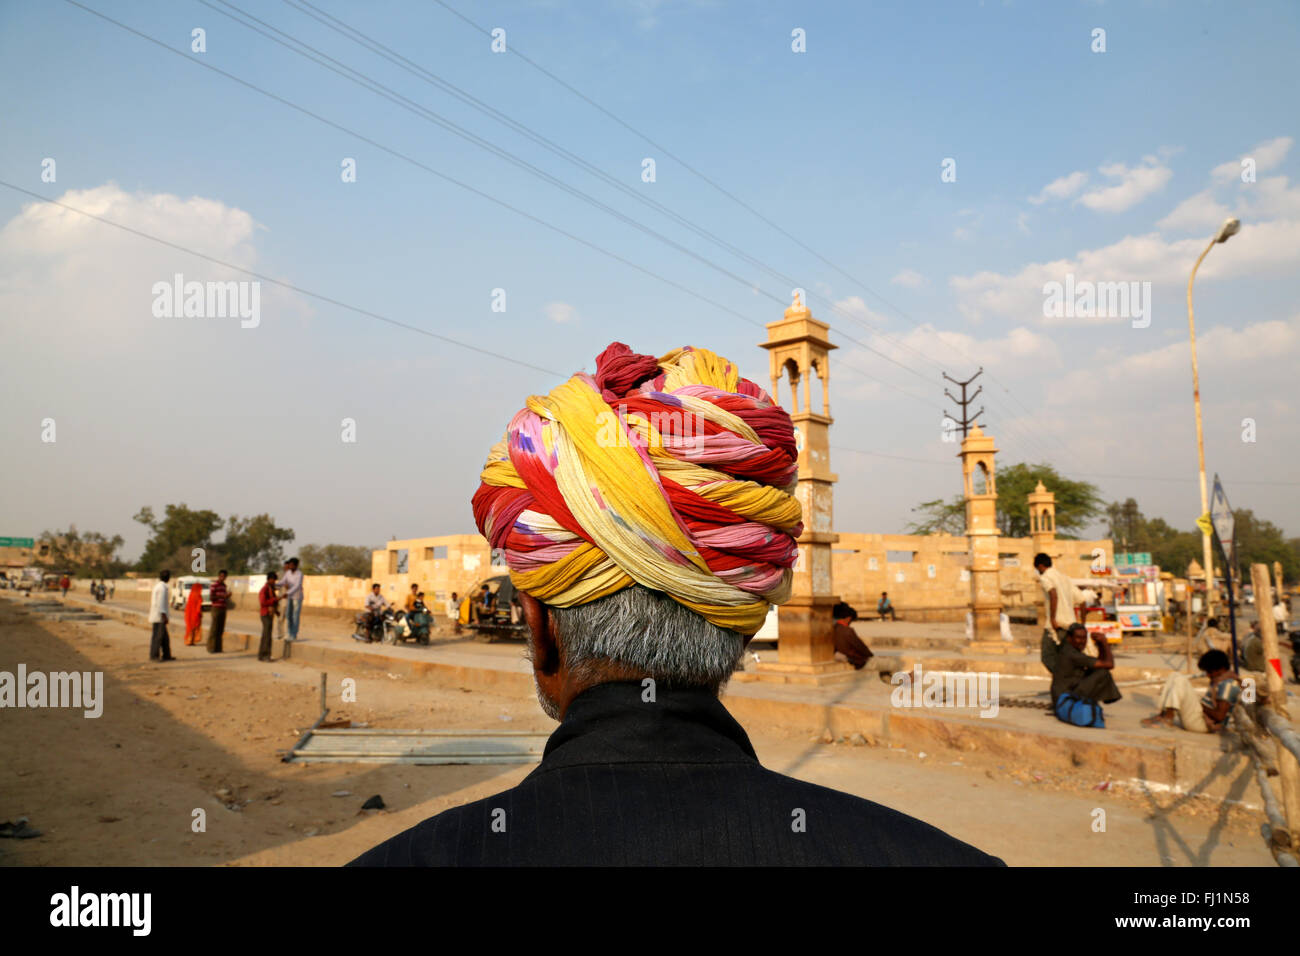 Portrait of man with turban in Jaisalmer , Rajasthan, India - Stock Image